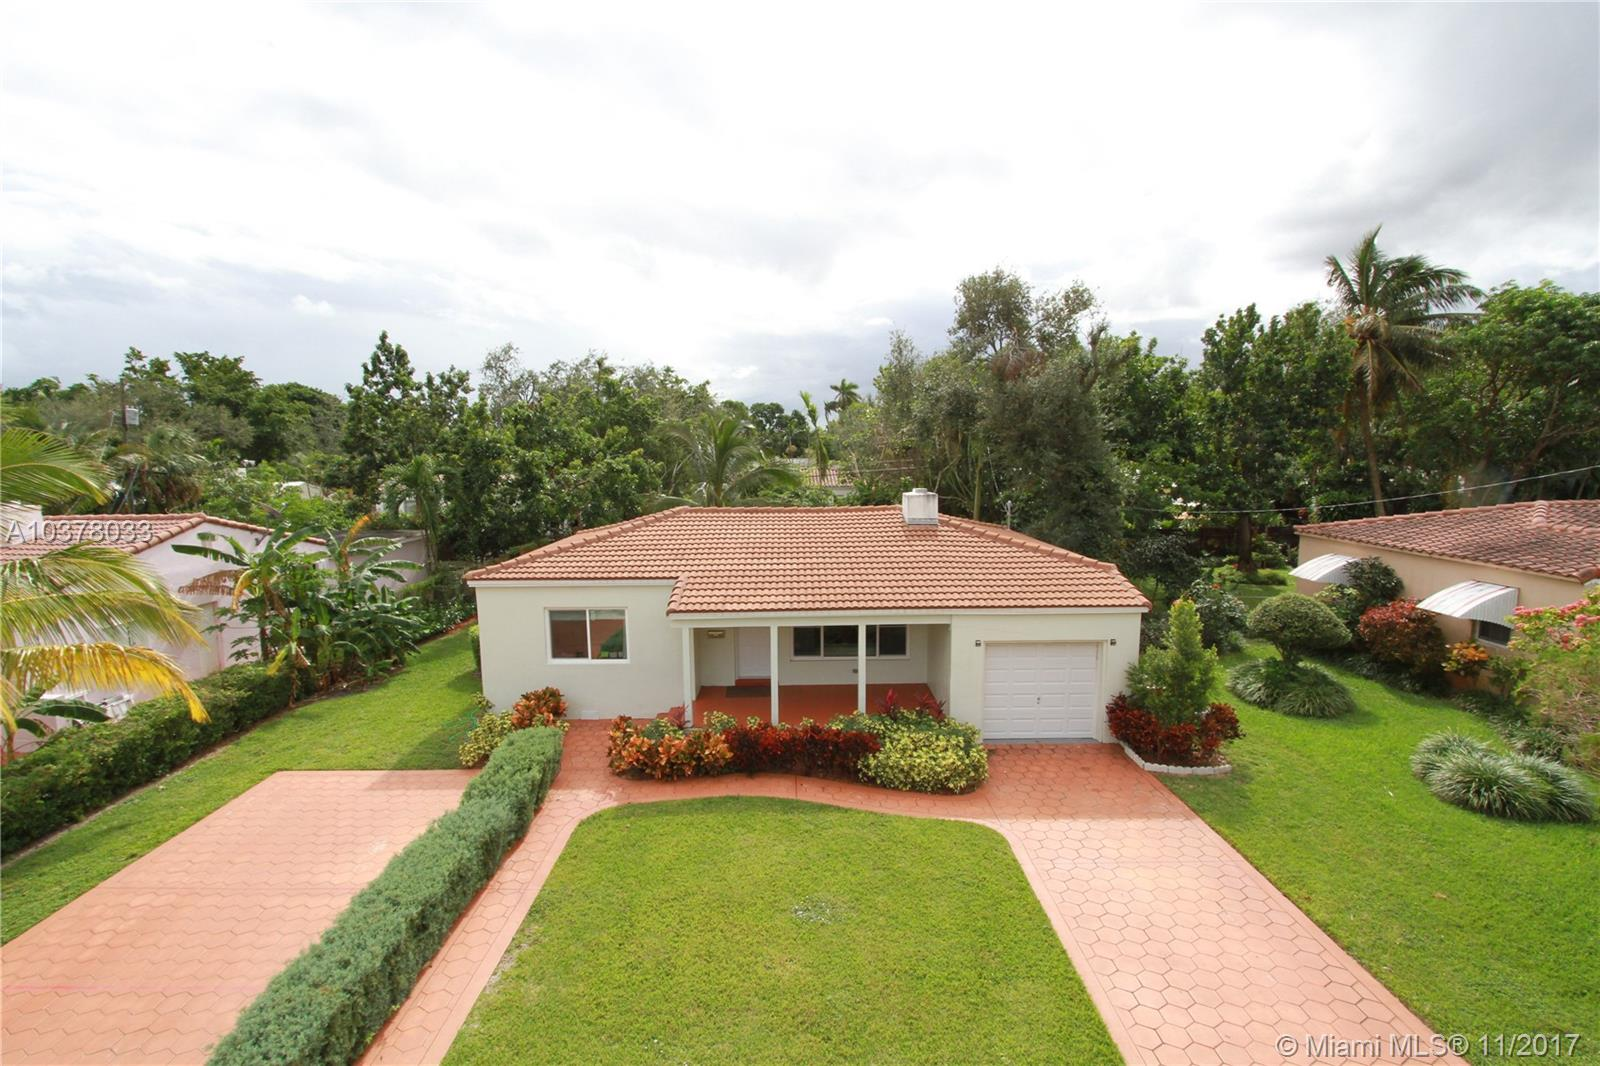 140 NW 102nd St, Miami Shores , FL 33150